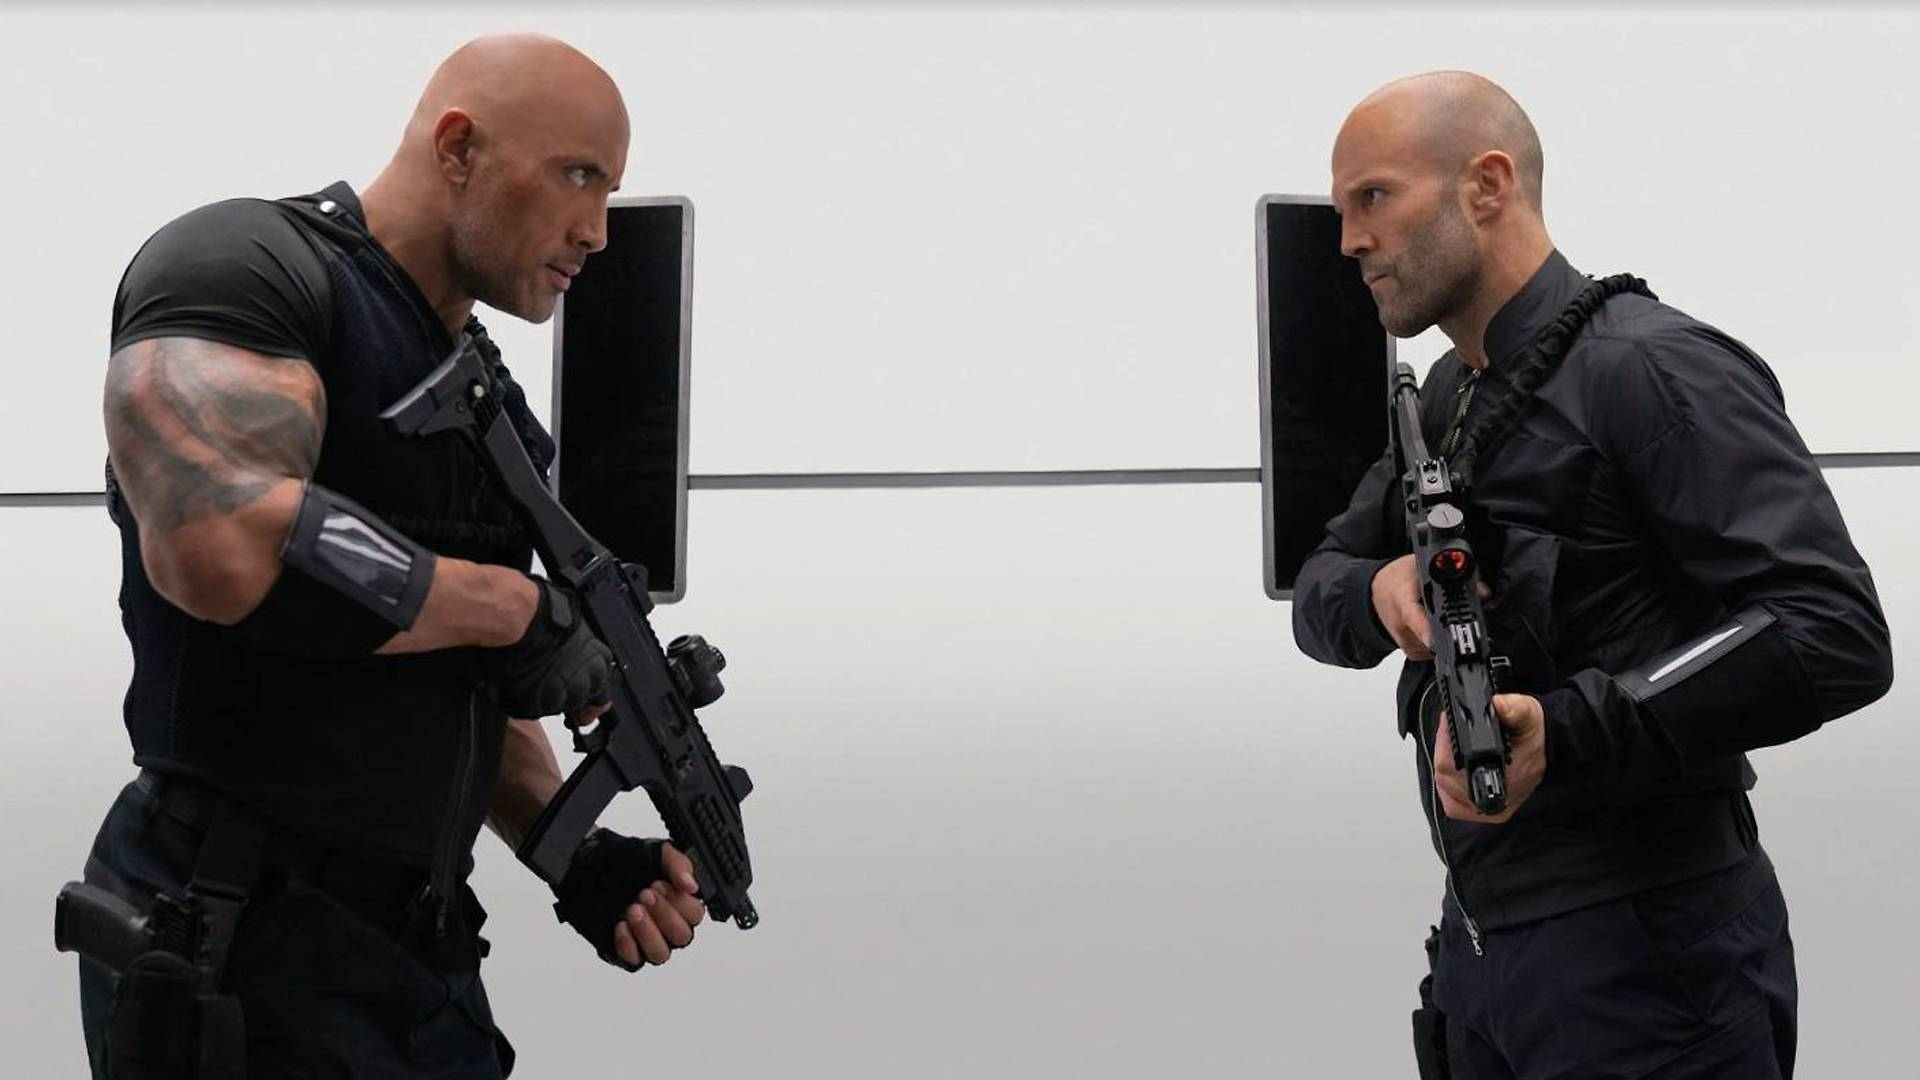 Fast-And-Furious-Presents-Hobbs-And-Shaw-HD-Background-Wallpaper-39368.jpg